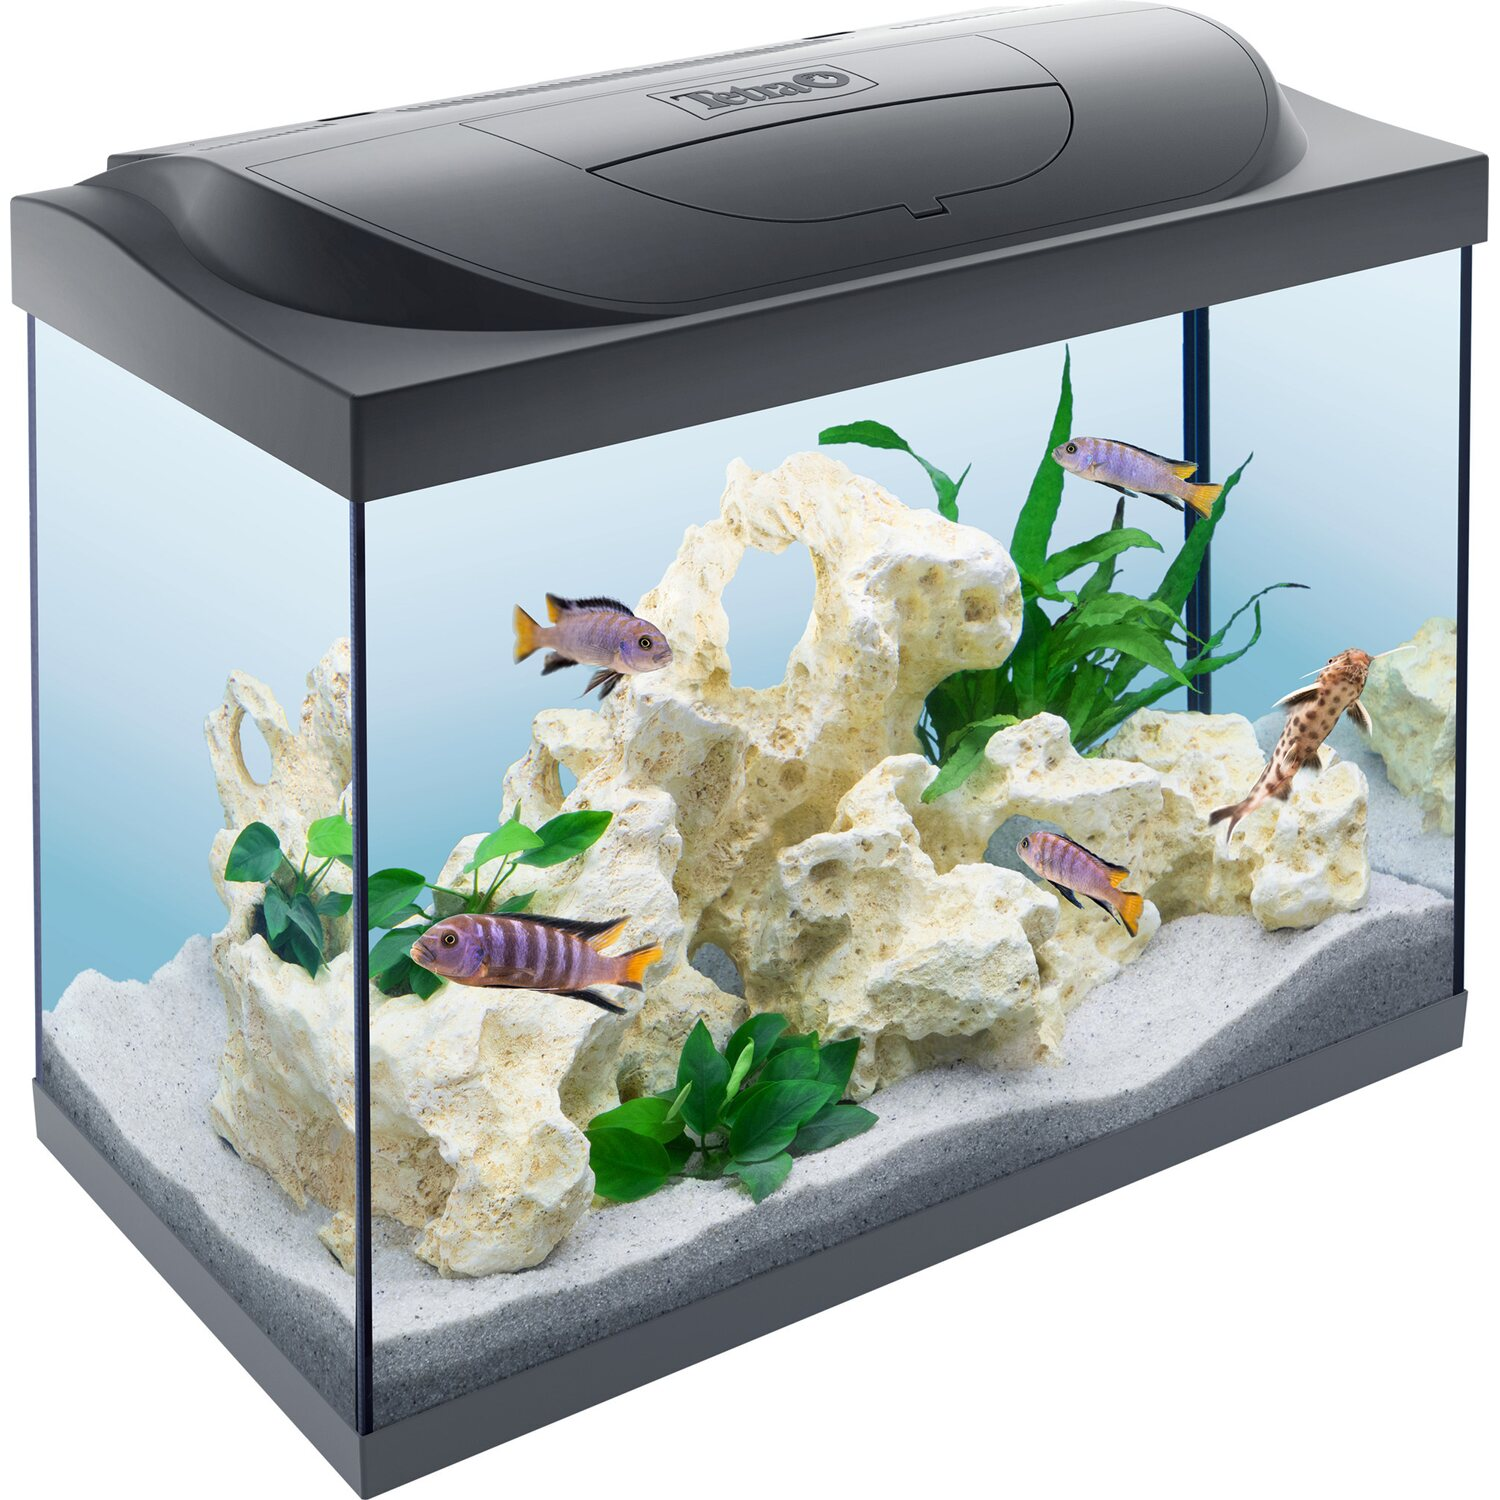 tetra starter line aquarium led 80 l kaufen bei obi. Black Bedroom Furniture Sets. Home Design Ideas